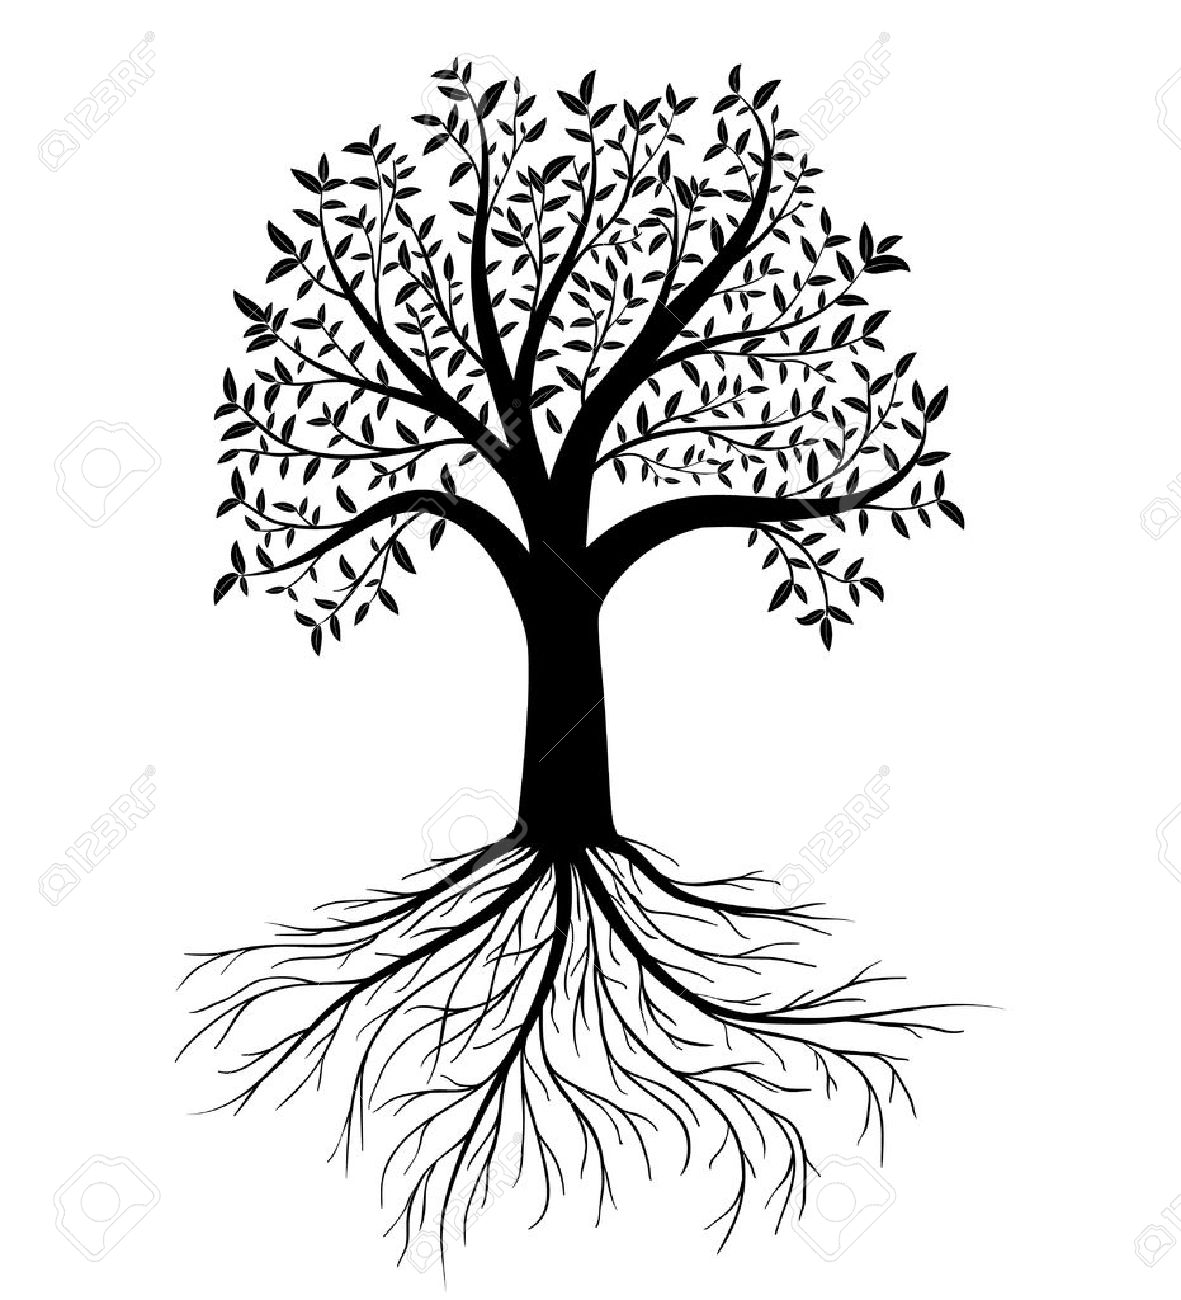 1181x1300 Silhouette Of Tree With Leaves And Roots Royalty Free Cliparts